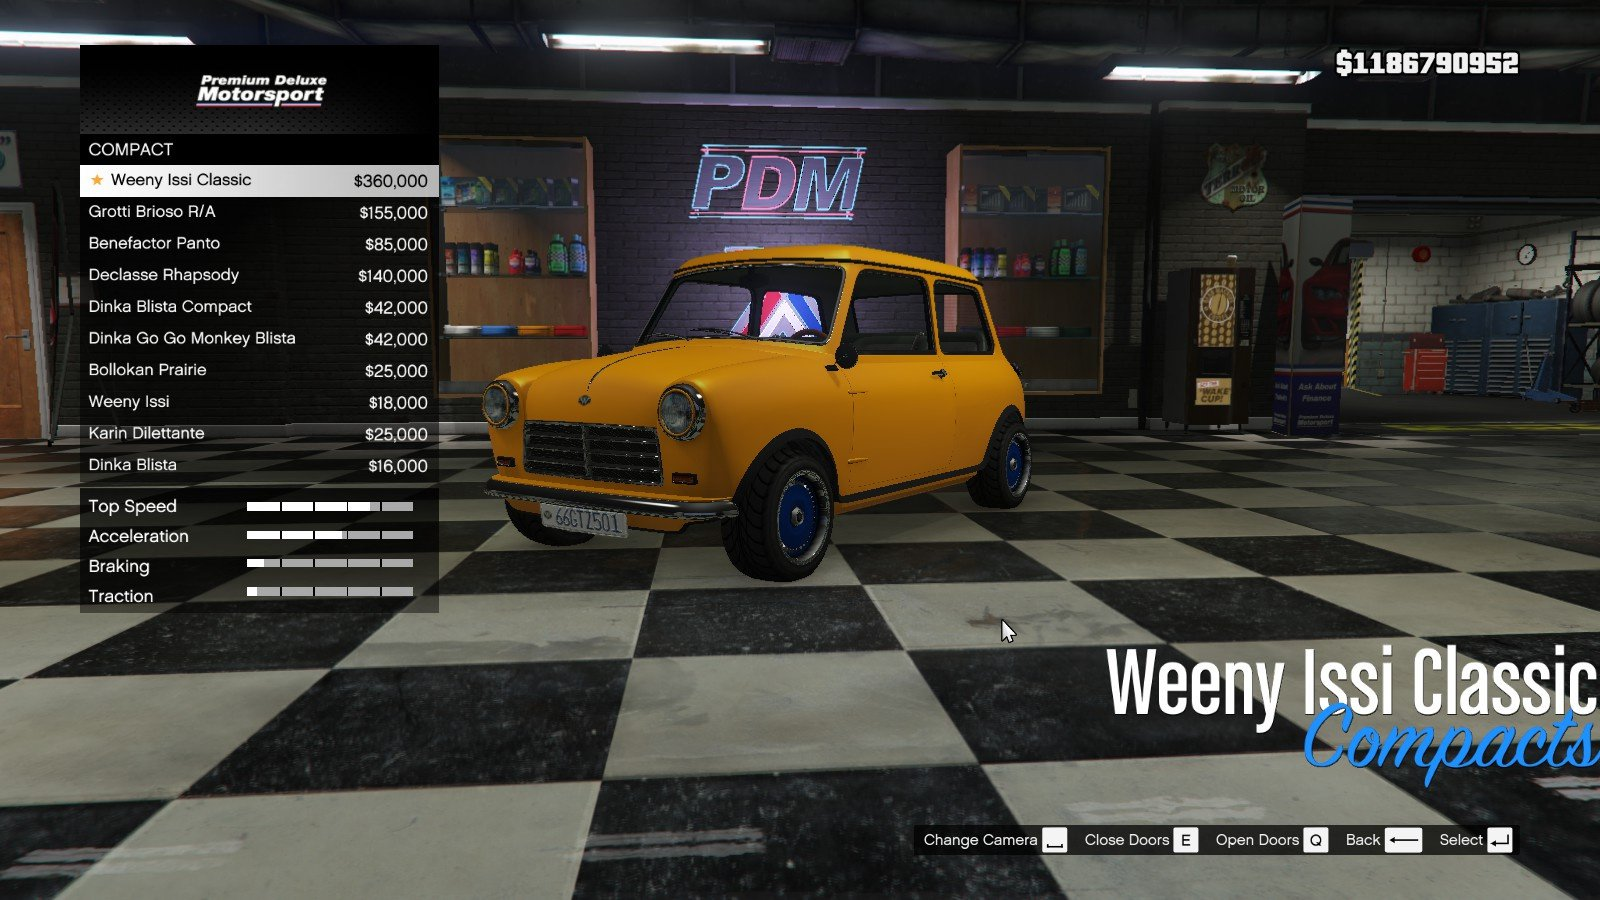 Premium Deluxe Motorsport Car Dealership Gta5 Modscom